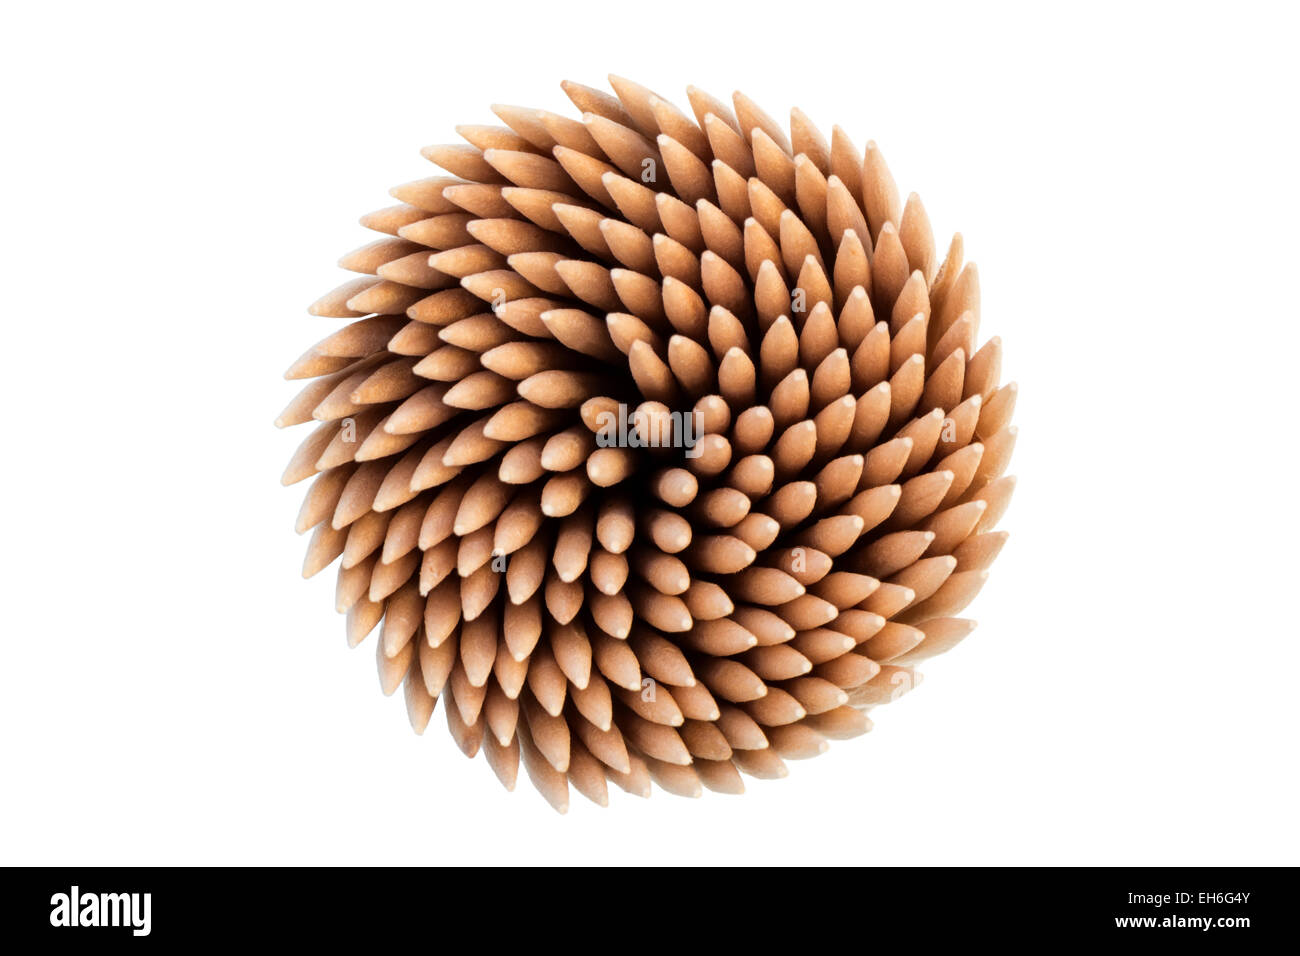 Stack of wooden toothpicks or cocktail sticks viewed from above, isolated on white background - Stock Image